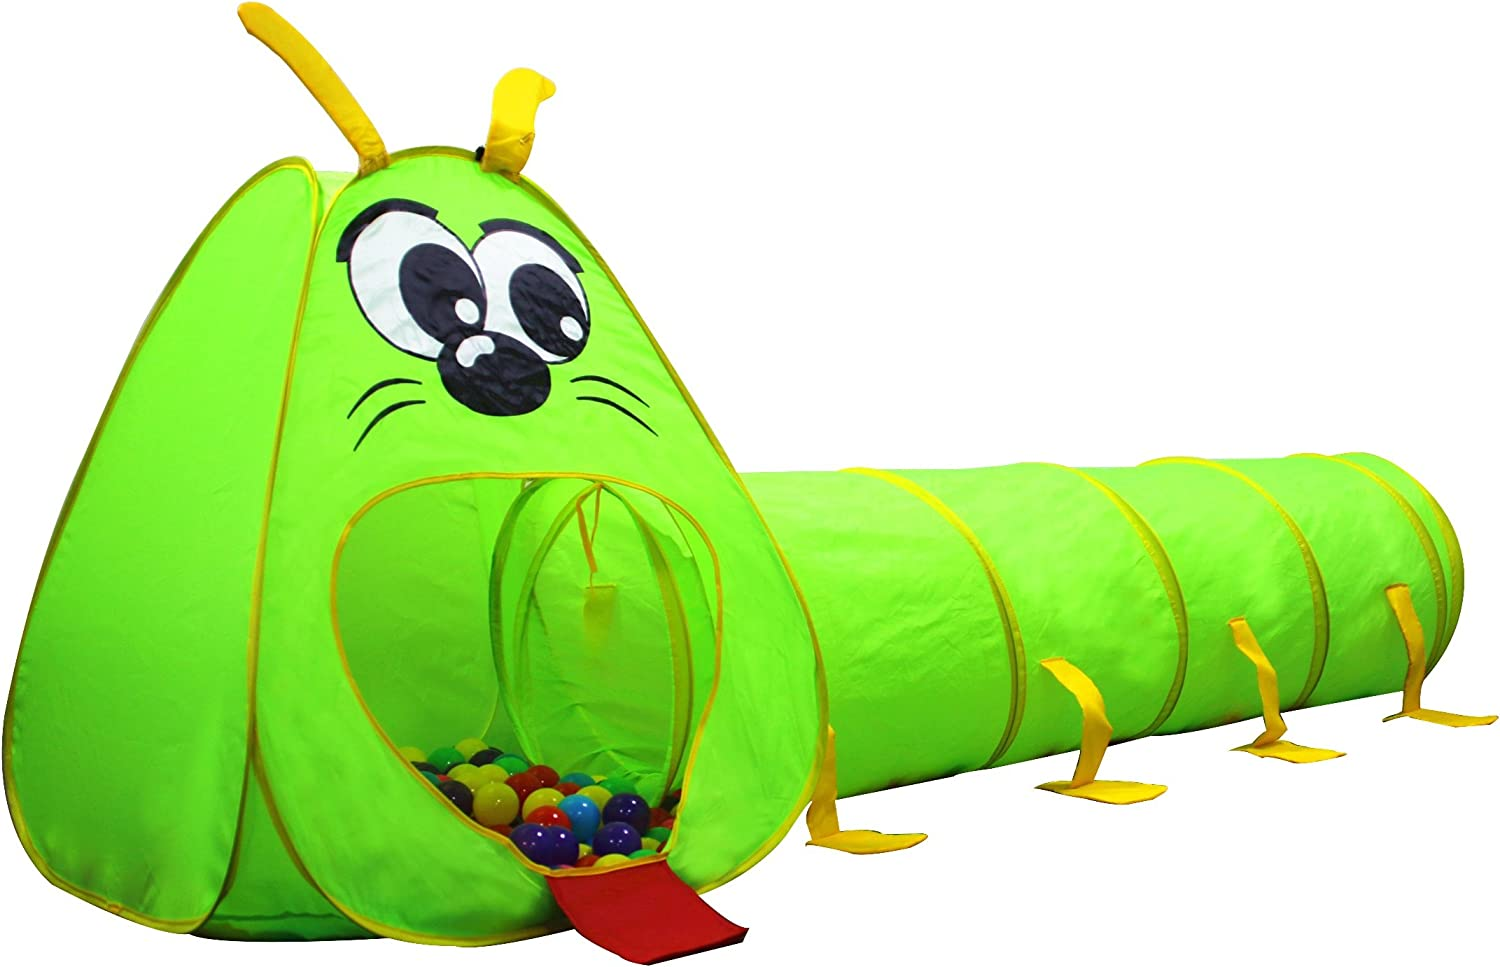 Kiddey Caterpillar Play Tunnel and Tent Combo (2-Piece Set) – Kids Crawling and Exploration Discovery Station for Early Learning and Muscle Development – Indoor/Outdoor Use